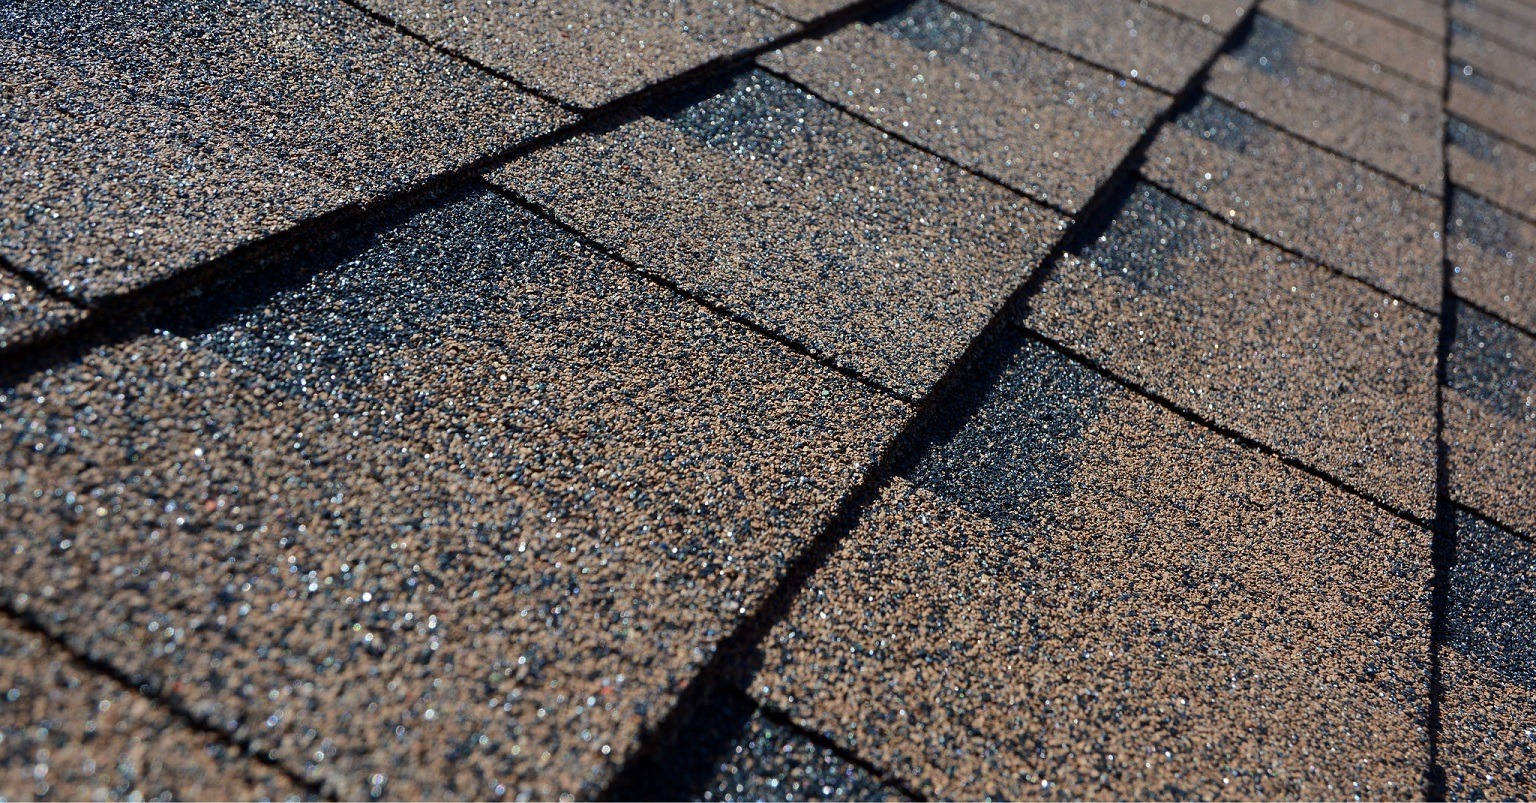 A close-up macro shot of Asphalt roof shingles, showcasing our pristine roof replacement work as a leading Denver roofing company.